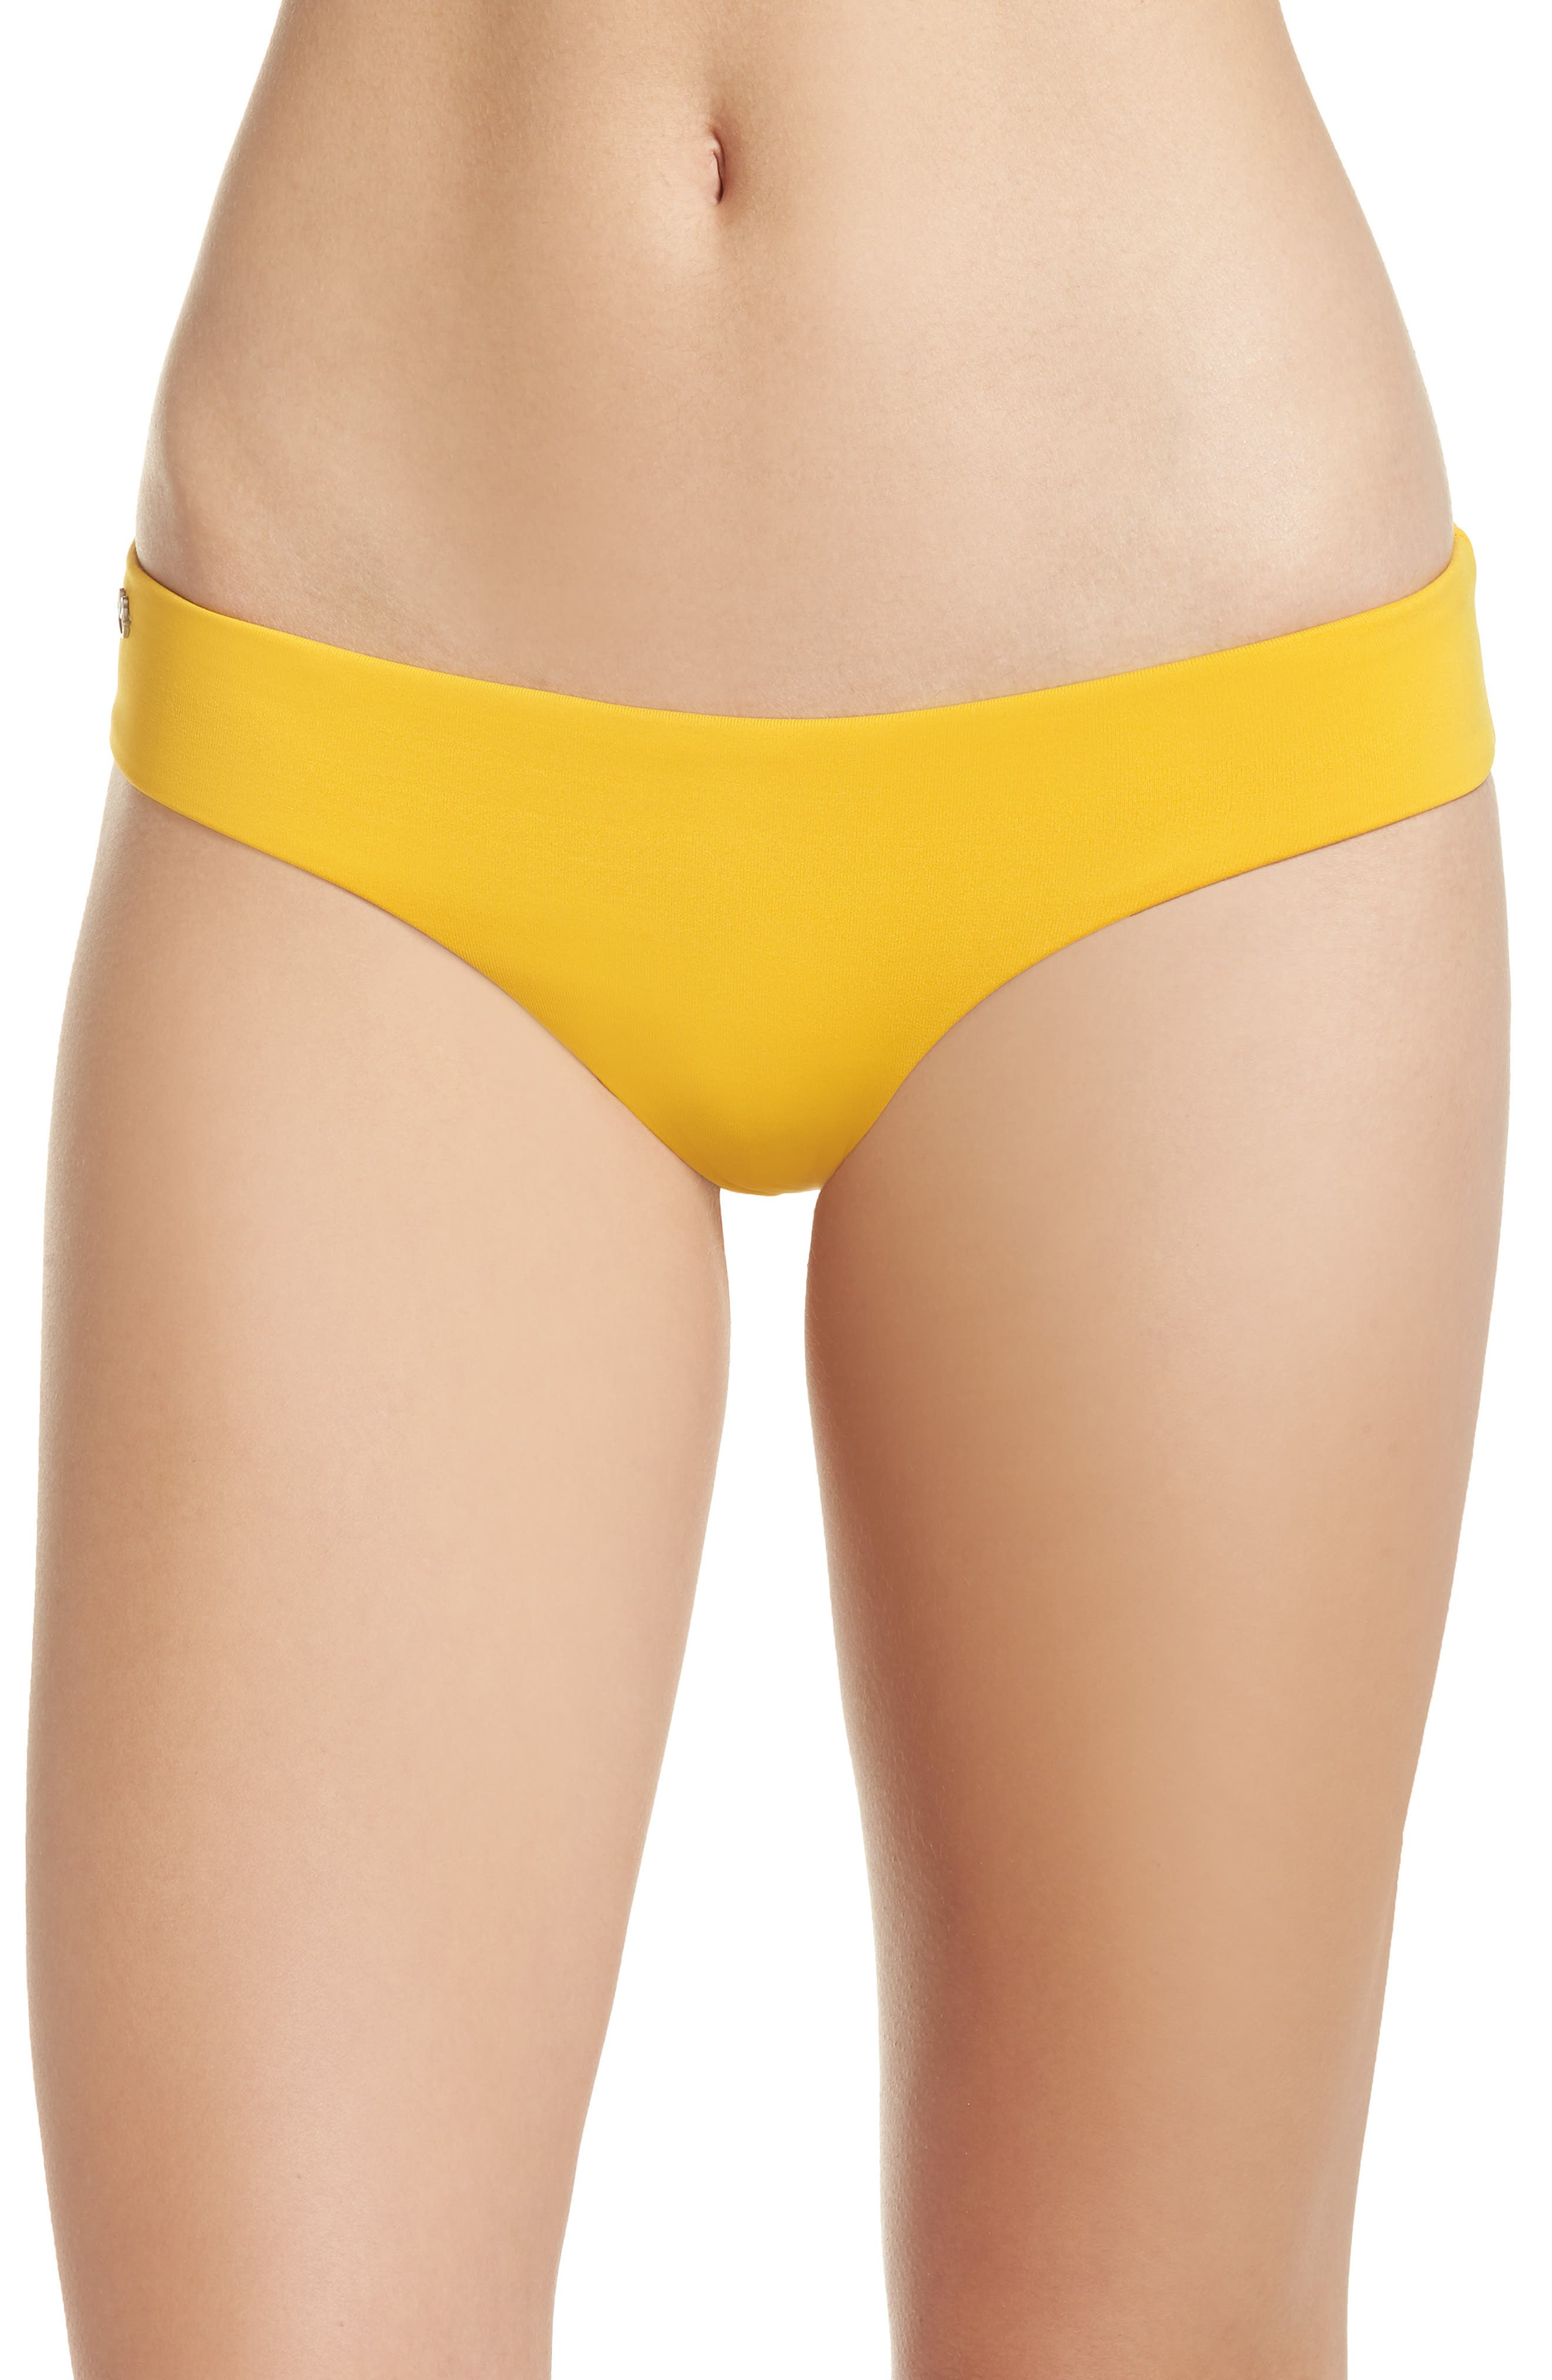 Mellow Yellow Sublime Leaf Reversible Bikini Bottoms,                             Main thumbnail 1, color,                             YELLOW